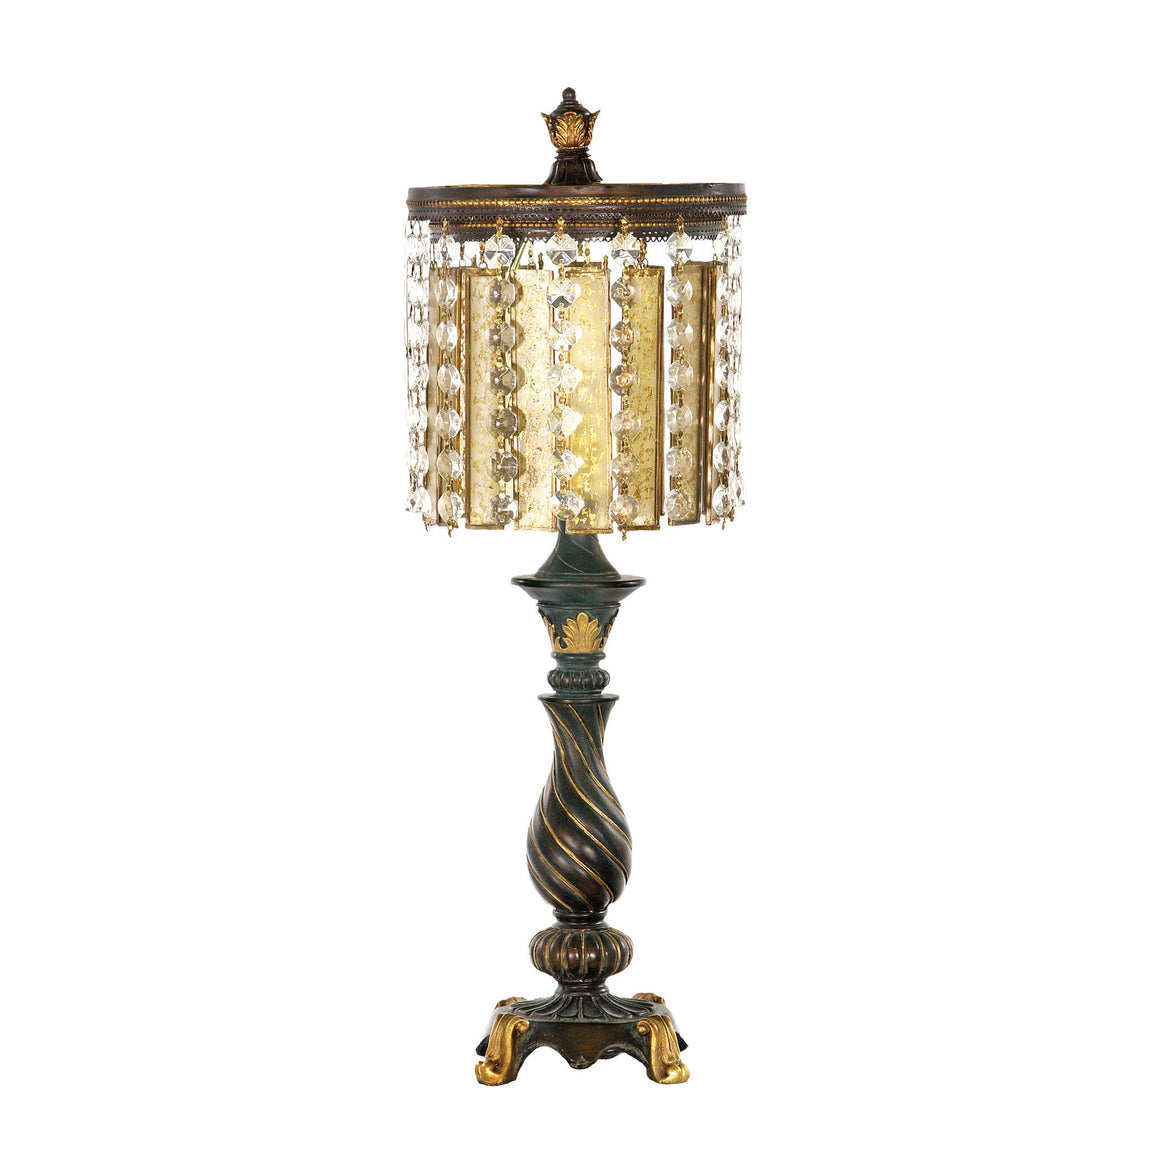 Amber & Crystal Table Lamp in Gold Leaf and Black 93-090